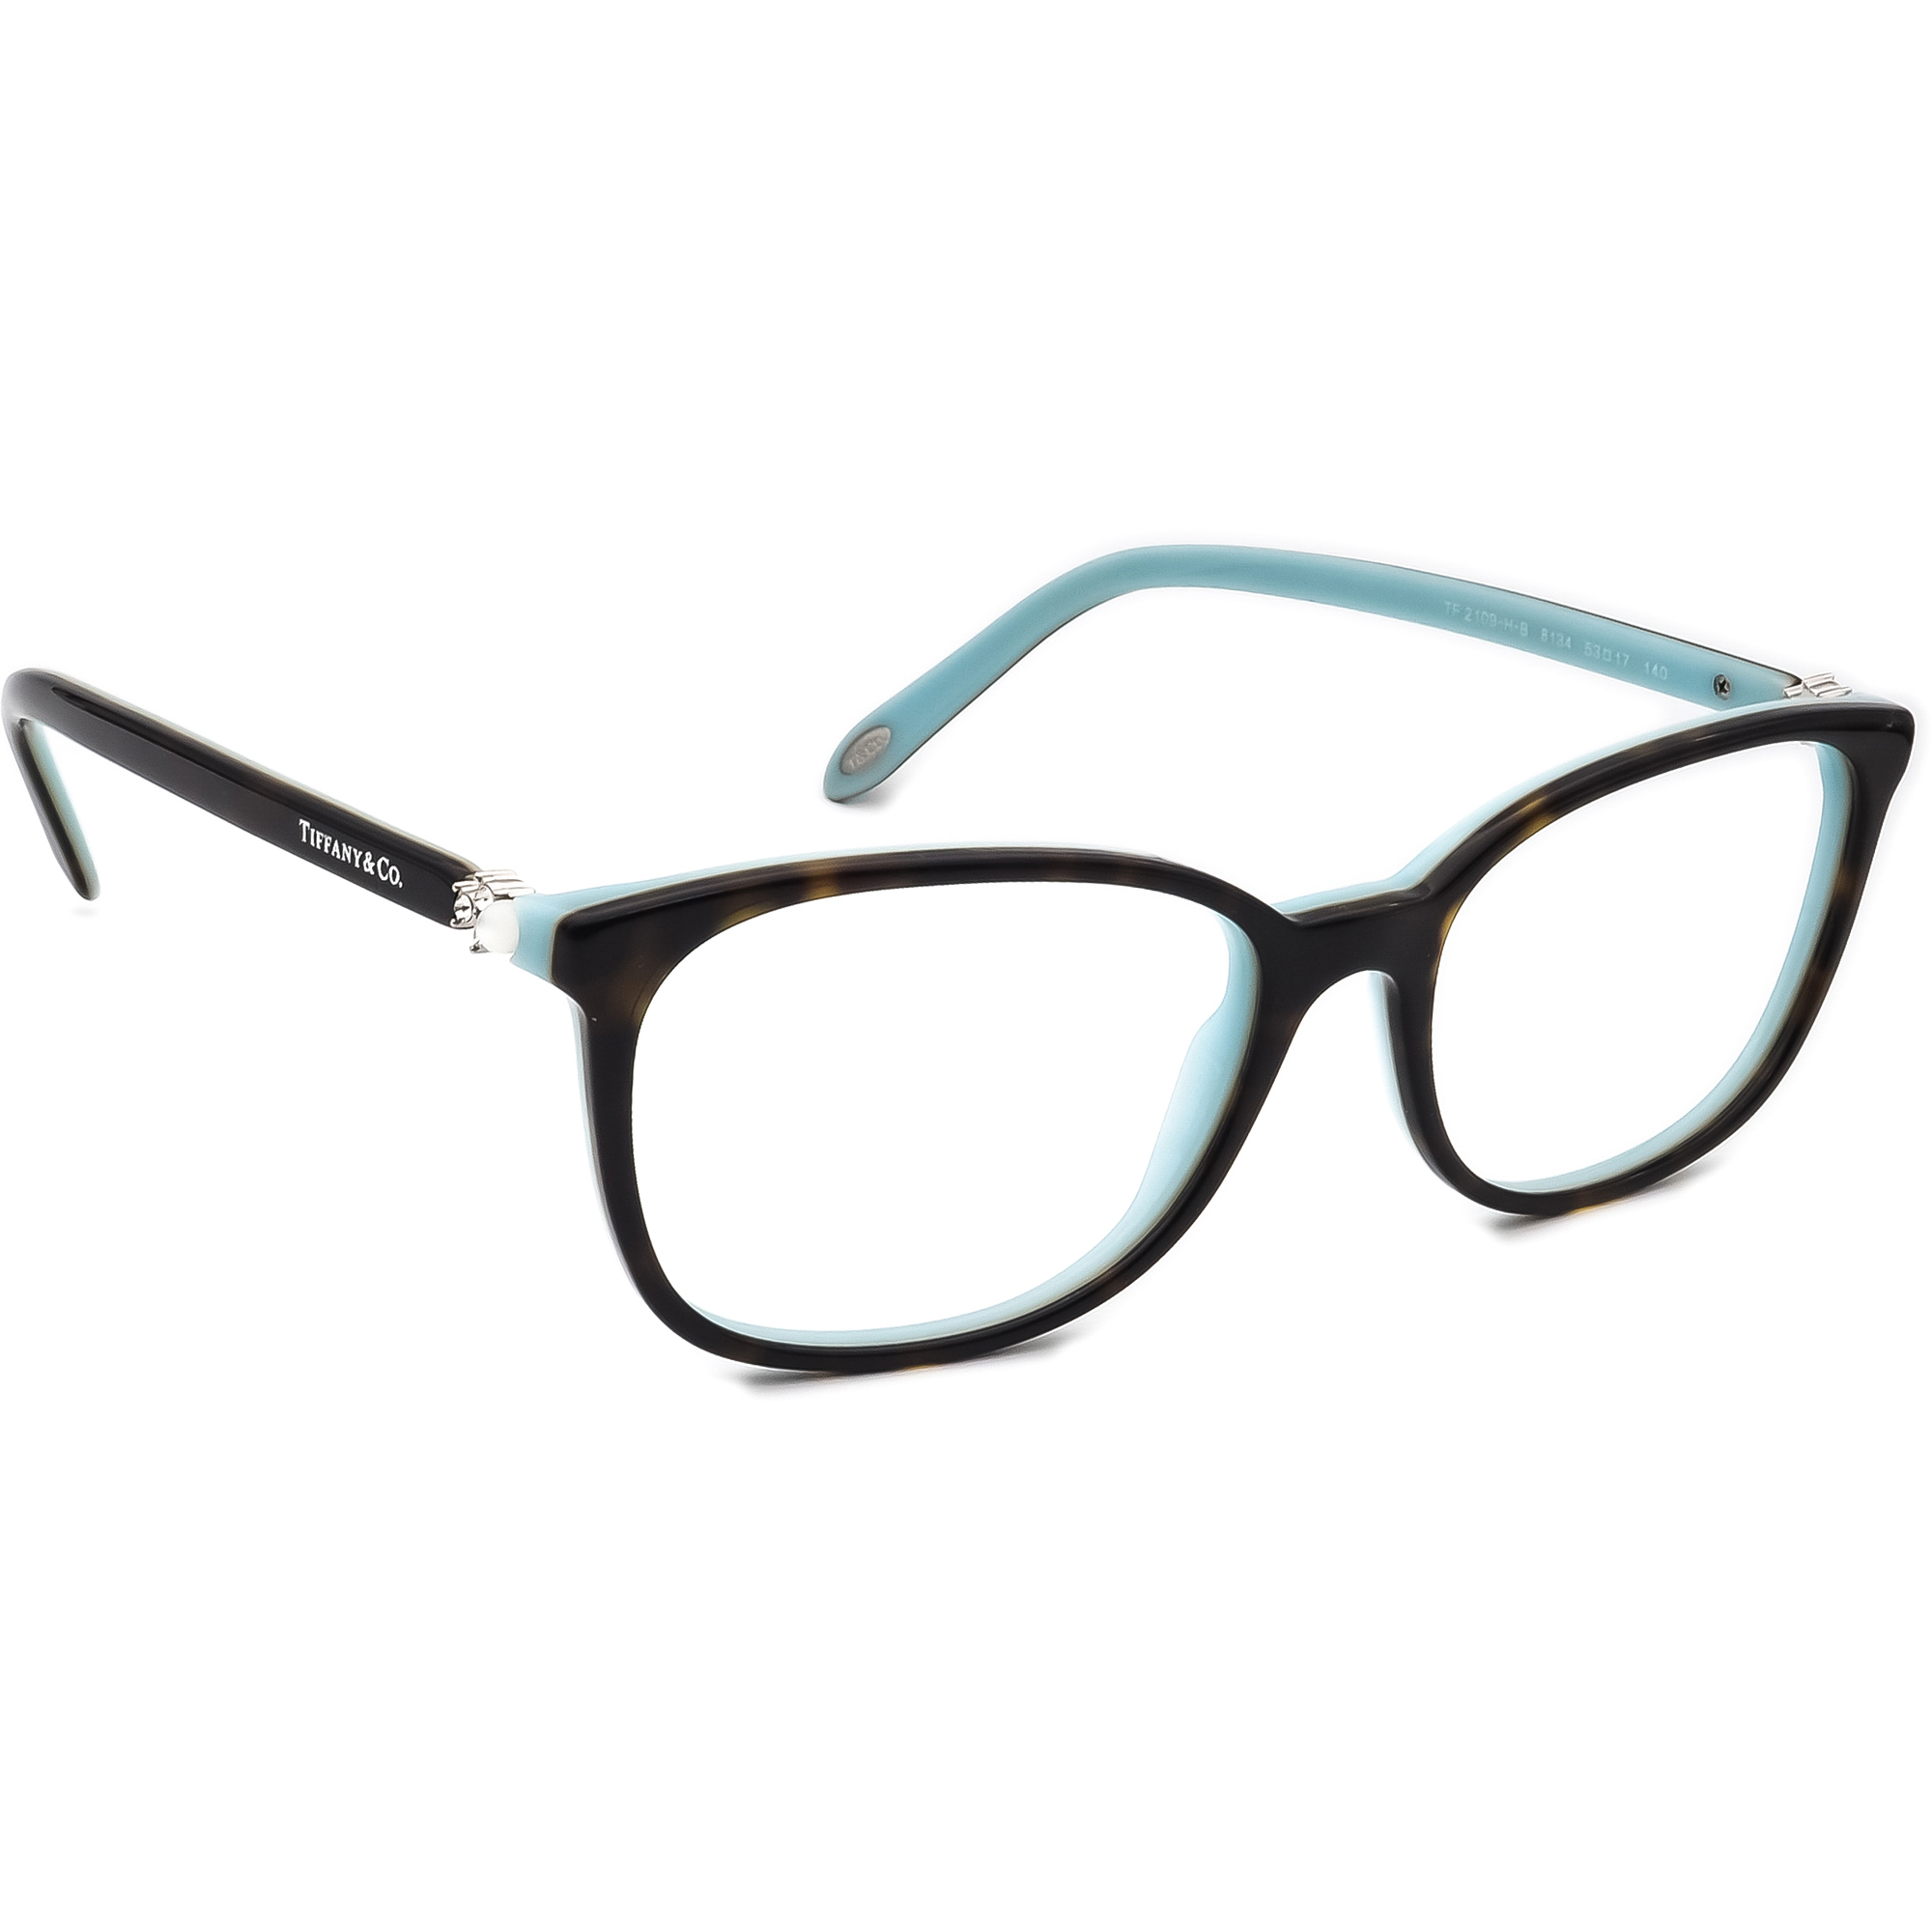 Tiffany & Co. TF 2109-H-B 8134 Eyeglasses